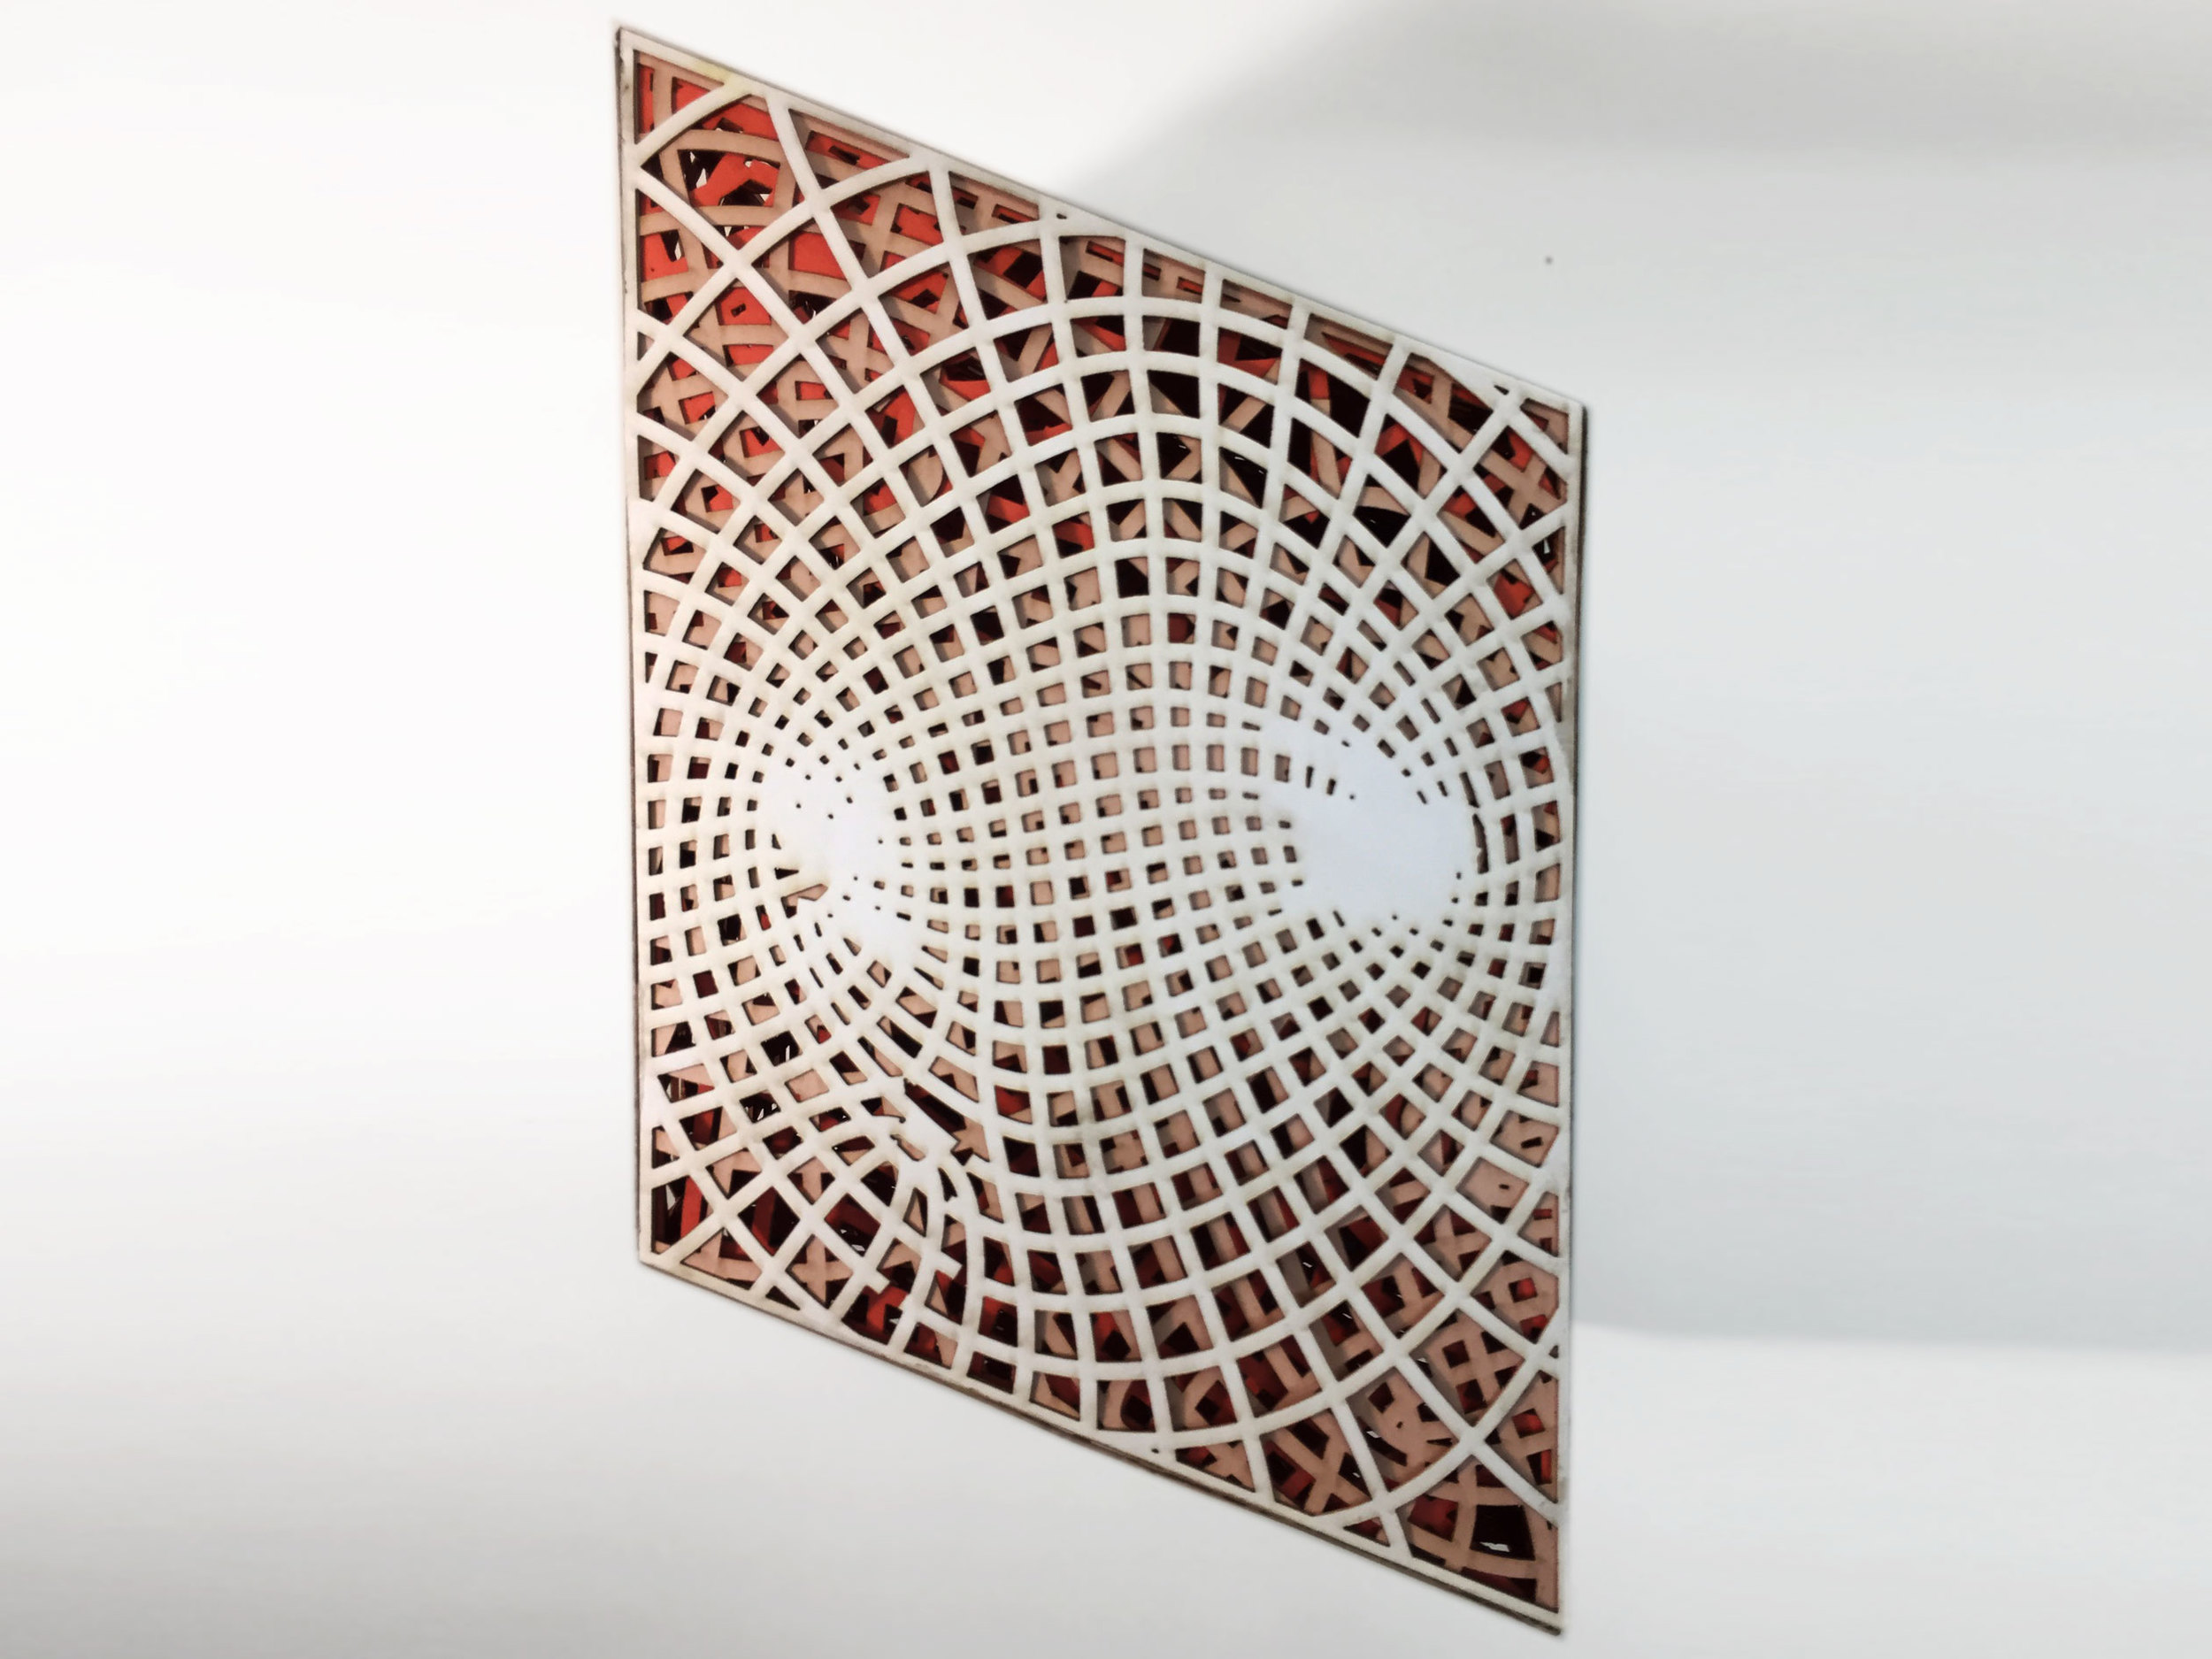 The first prototype was made of 3 layers of laser cut paper. Each layer represented the stress pattern of a single orientation of the stool. Each layer is week on it's own however the stool gains strength in its redundancy.